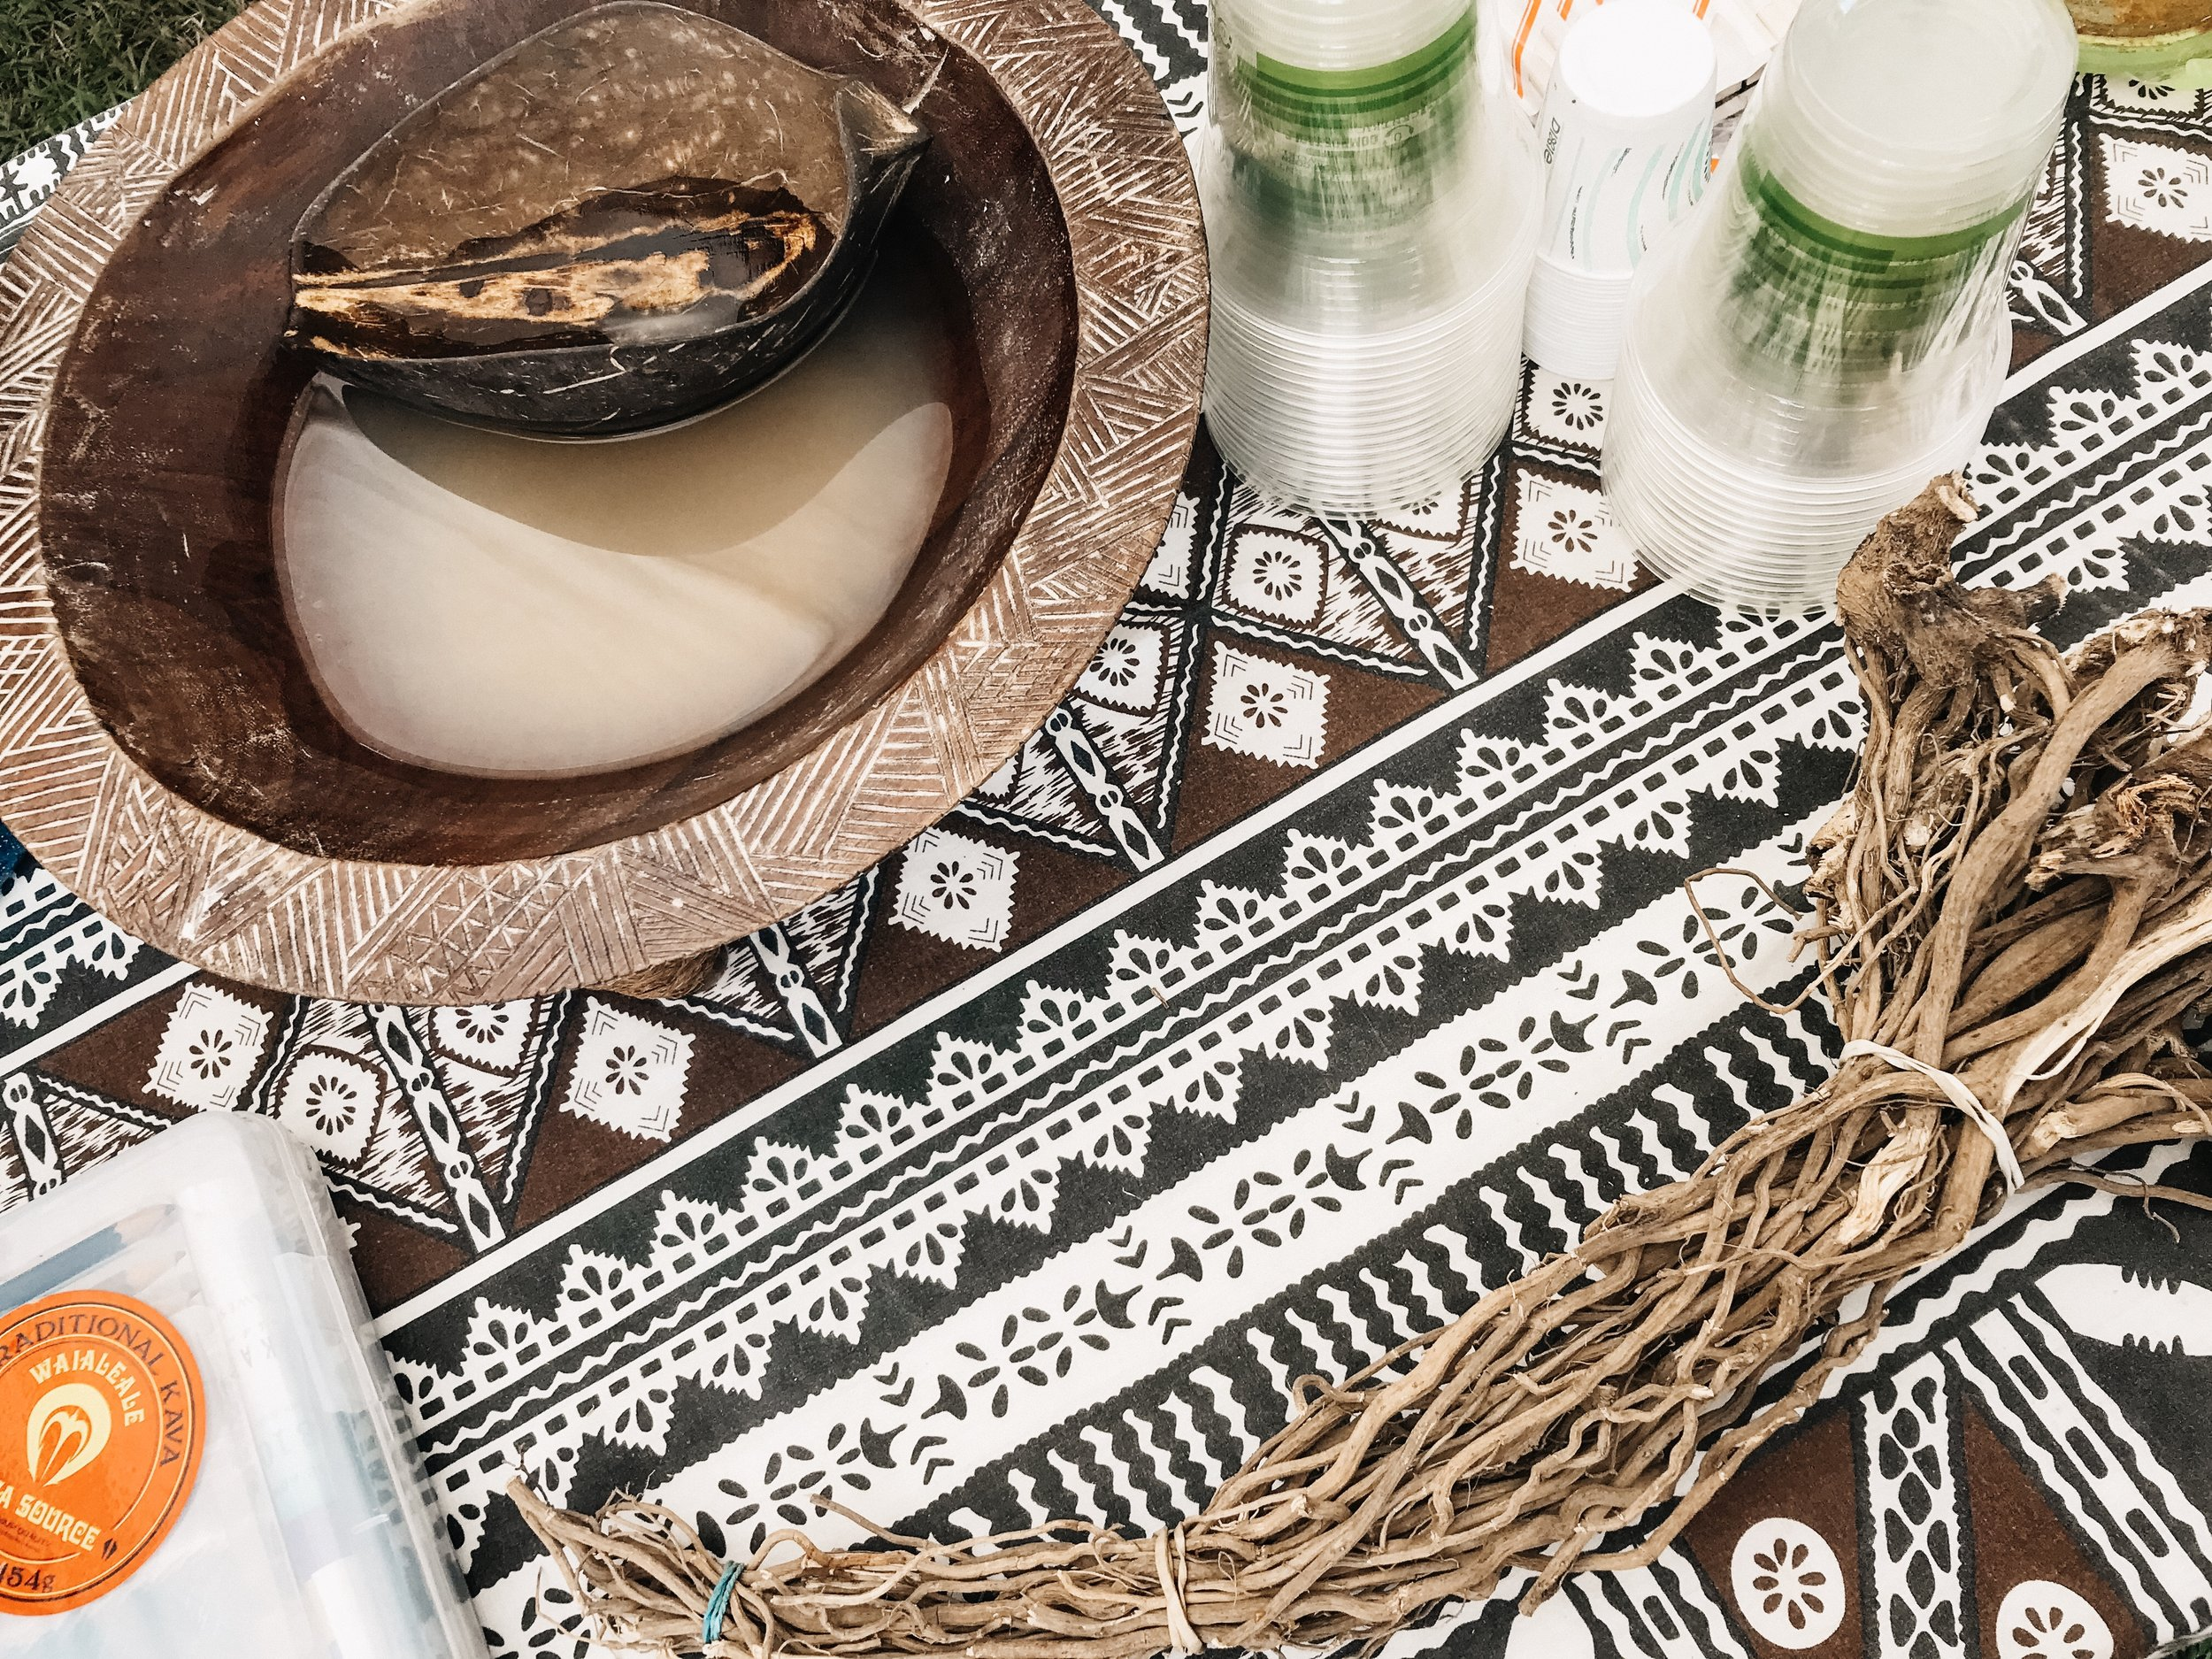 We sampled Kava - a root commonly used in Polynesian cultures to calm nerves and promote relaxation.